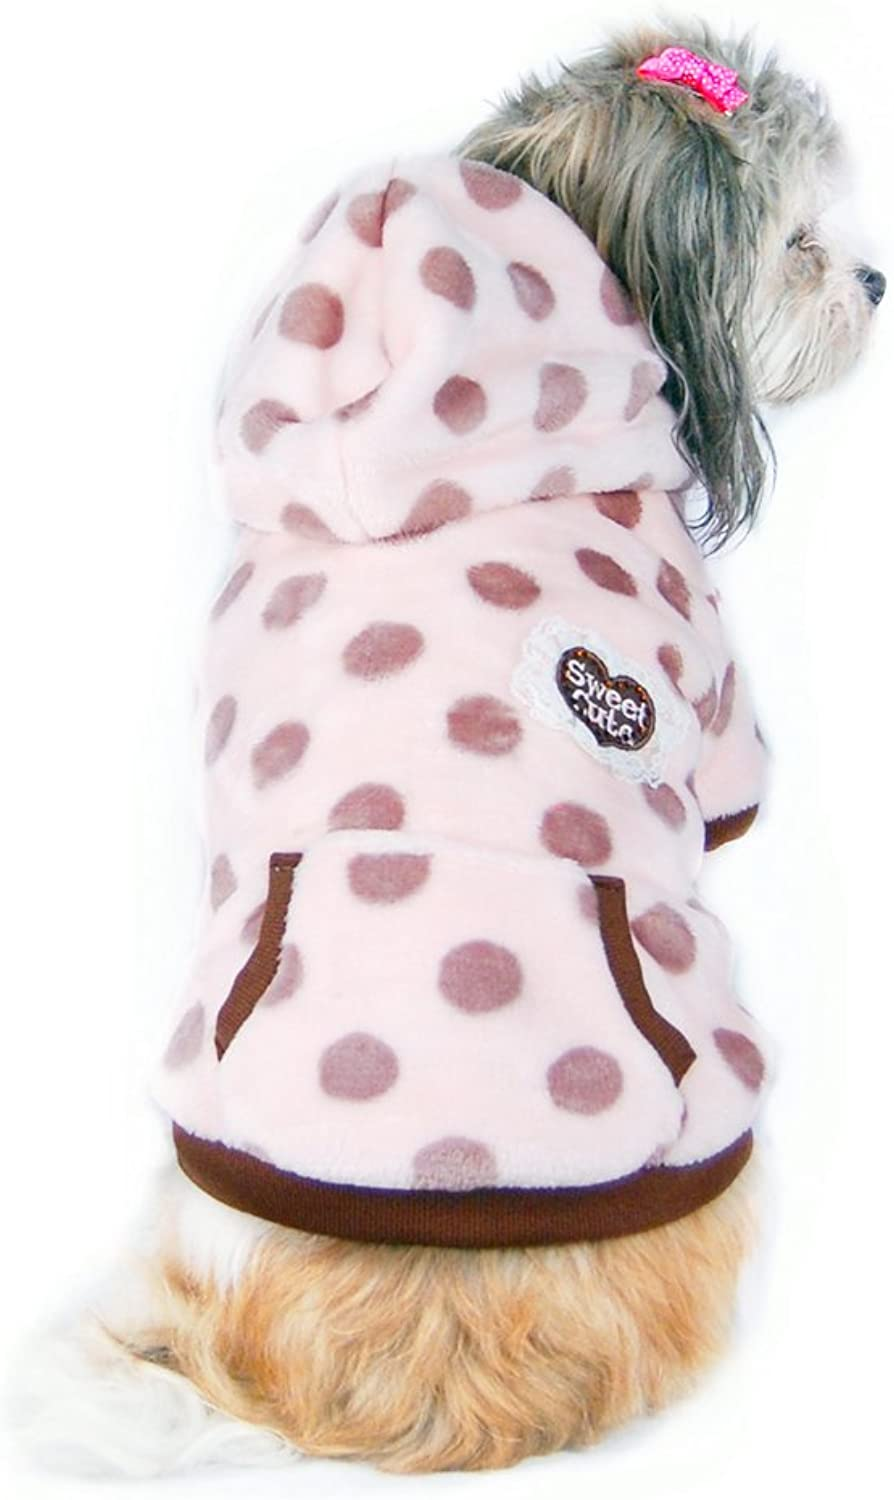 Anima Ultra Soft Polka Dot Fleece Jacket for Small Dogs and Pets, Large, Pink